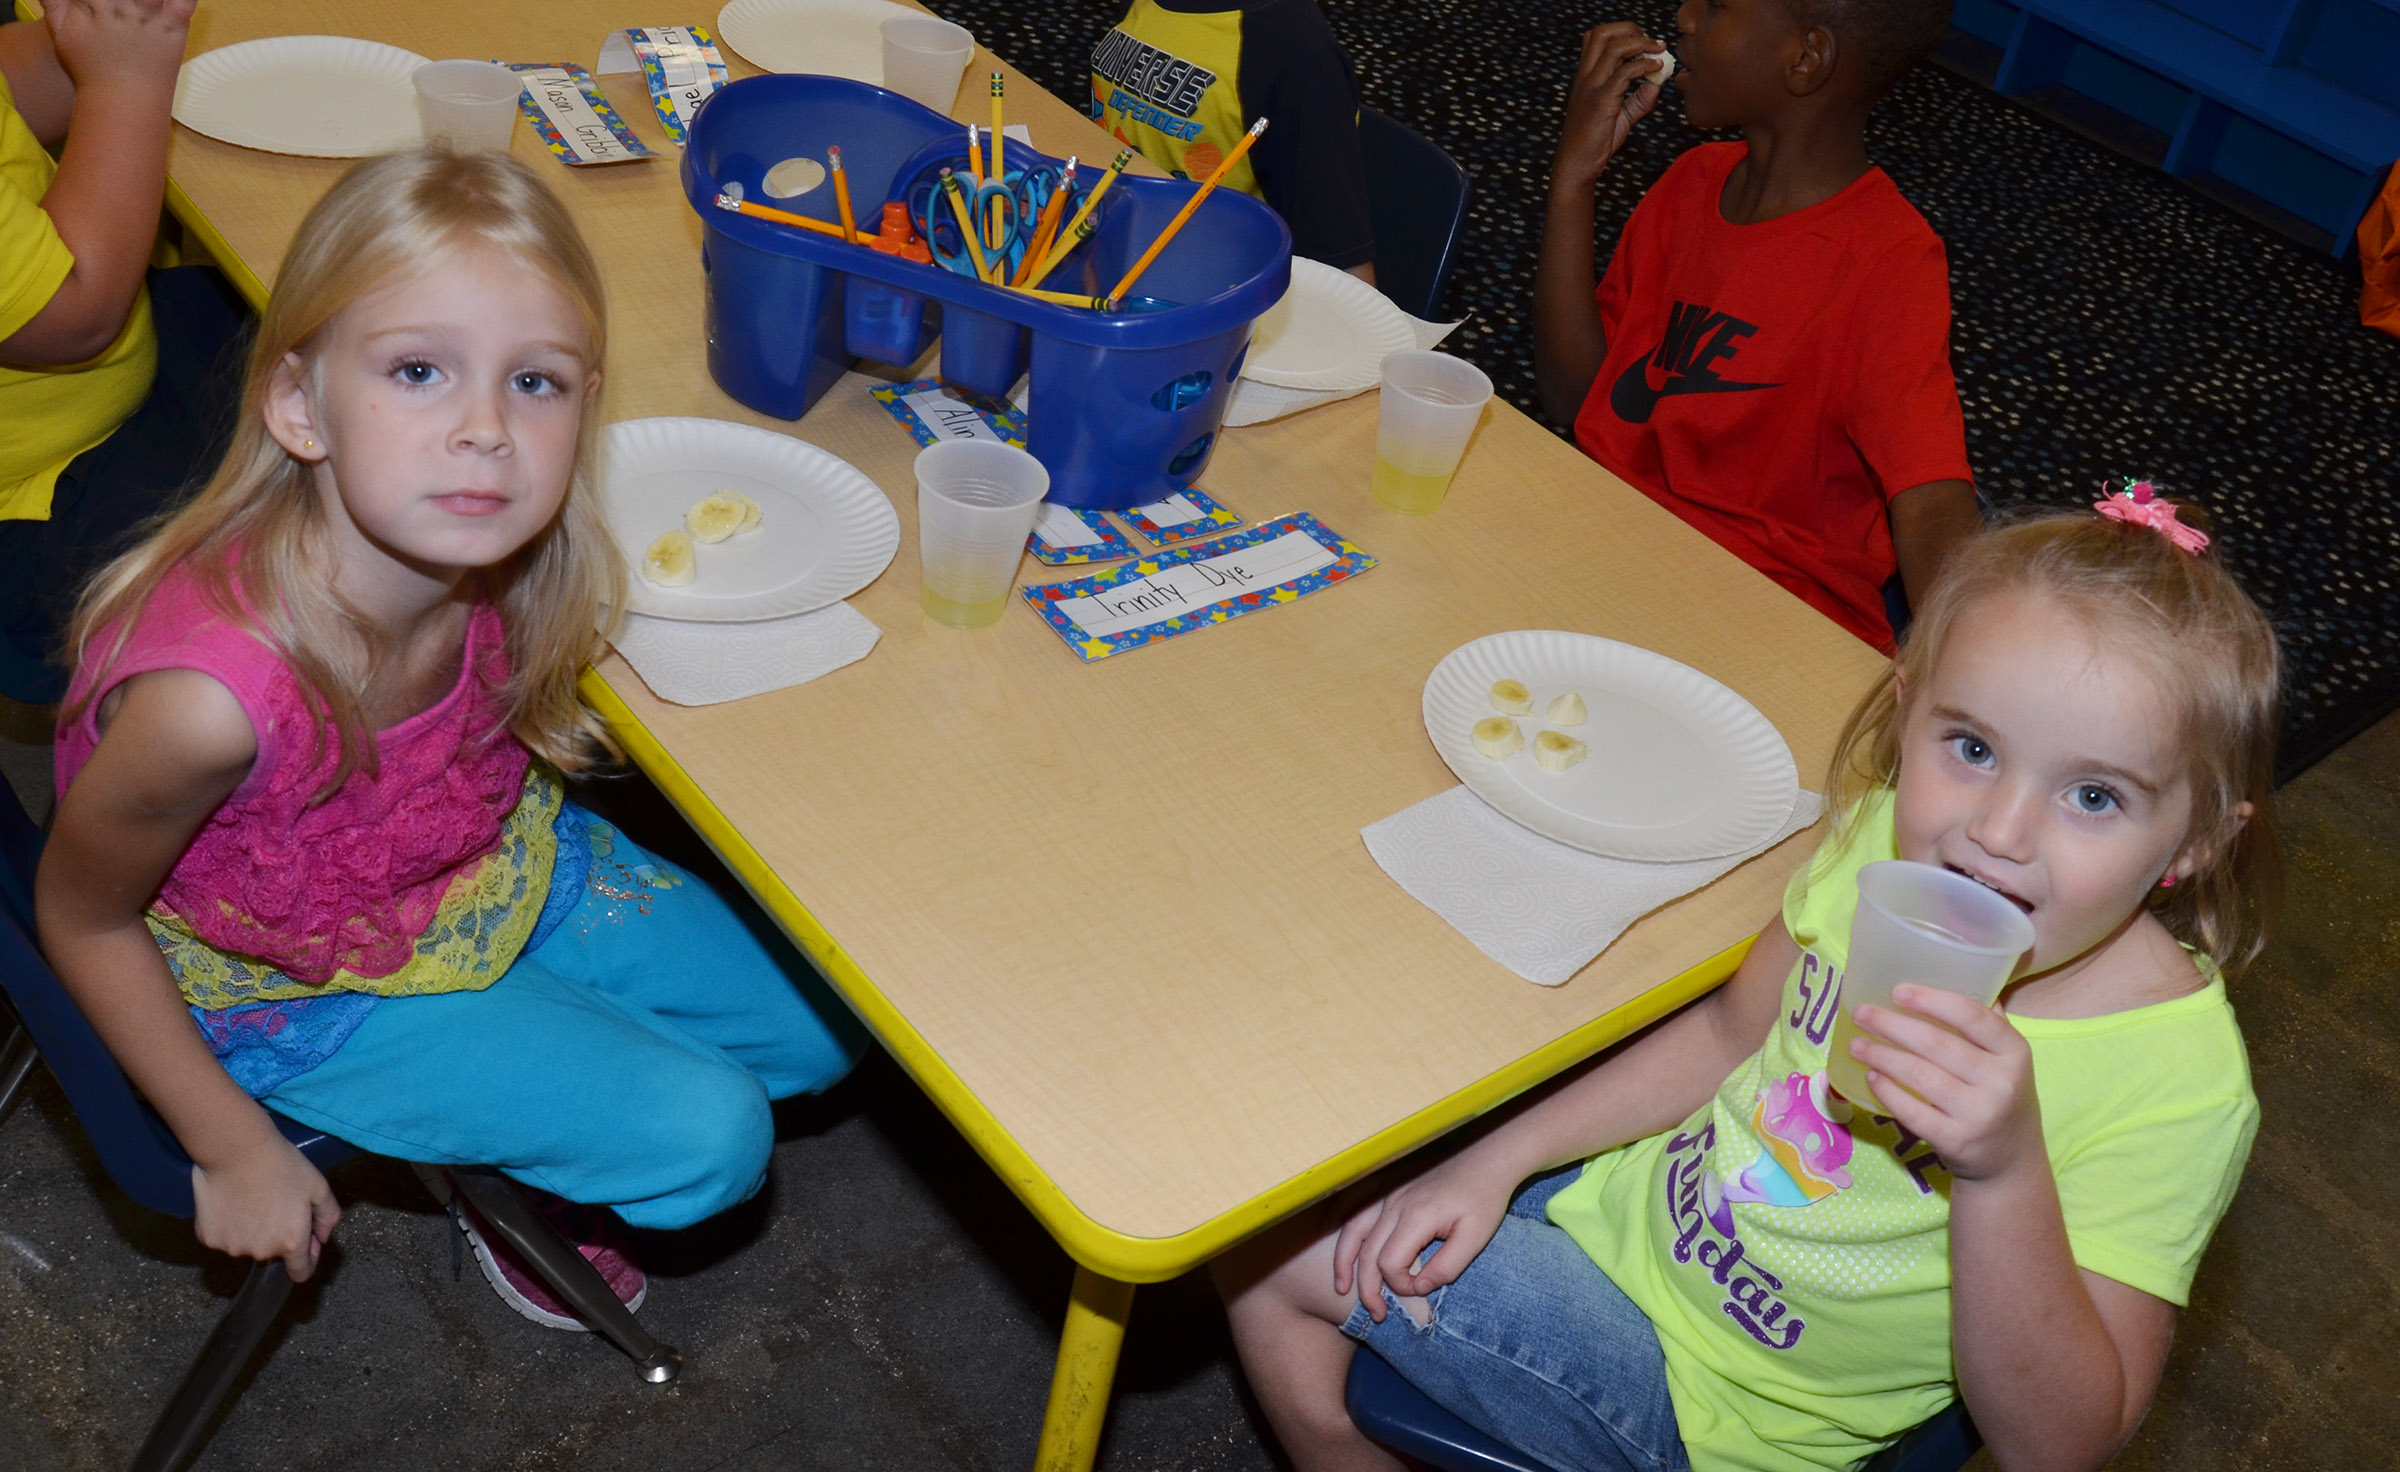 CES kindergartener Alinna Bray, at left, and Trinity Dye sample bananas and lemonade.